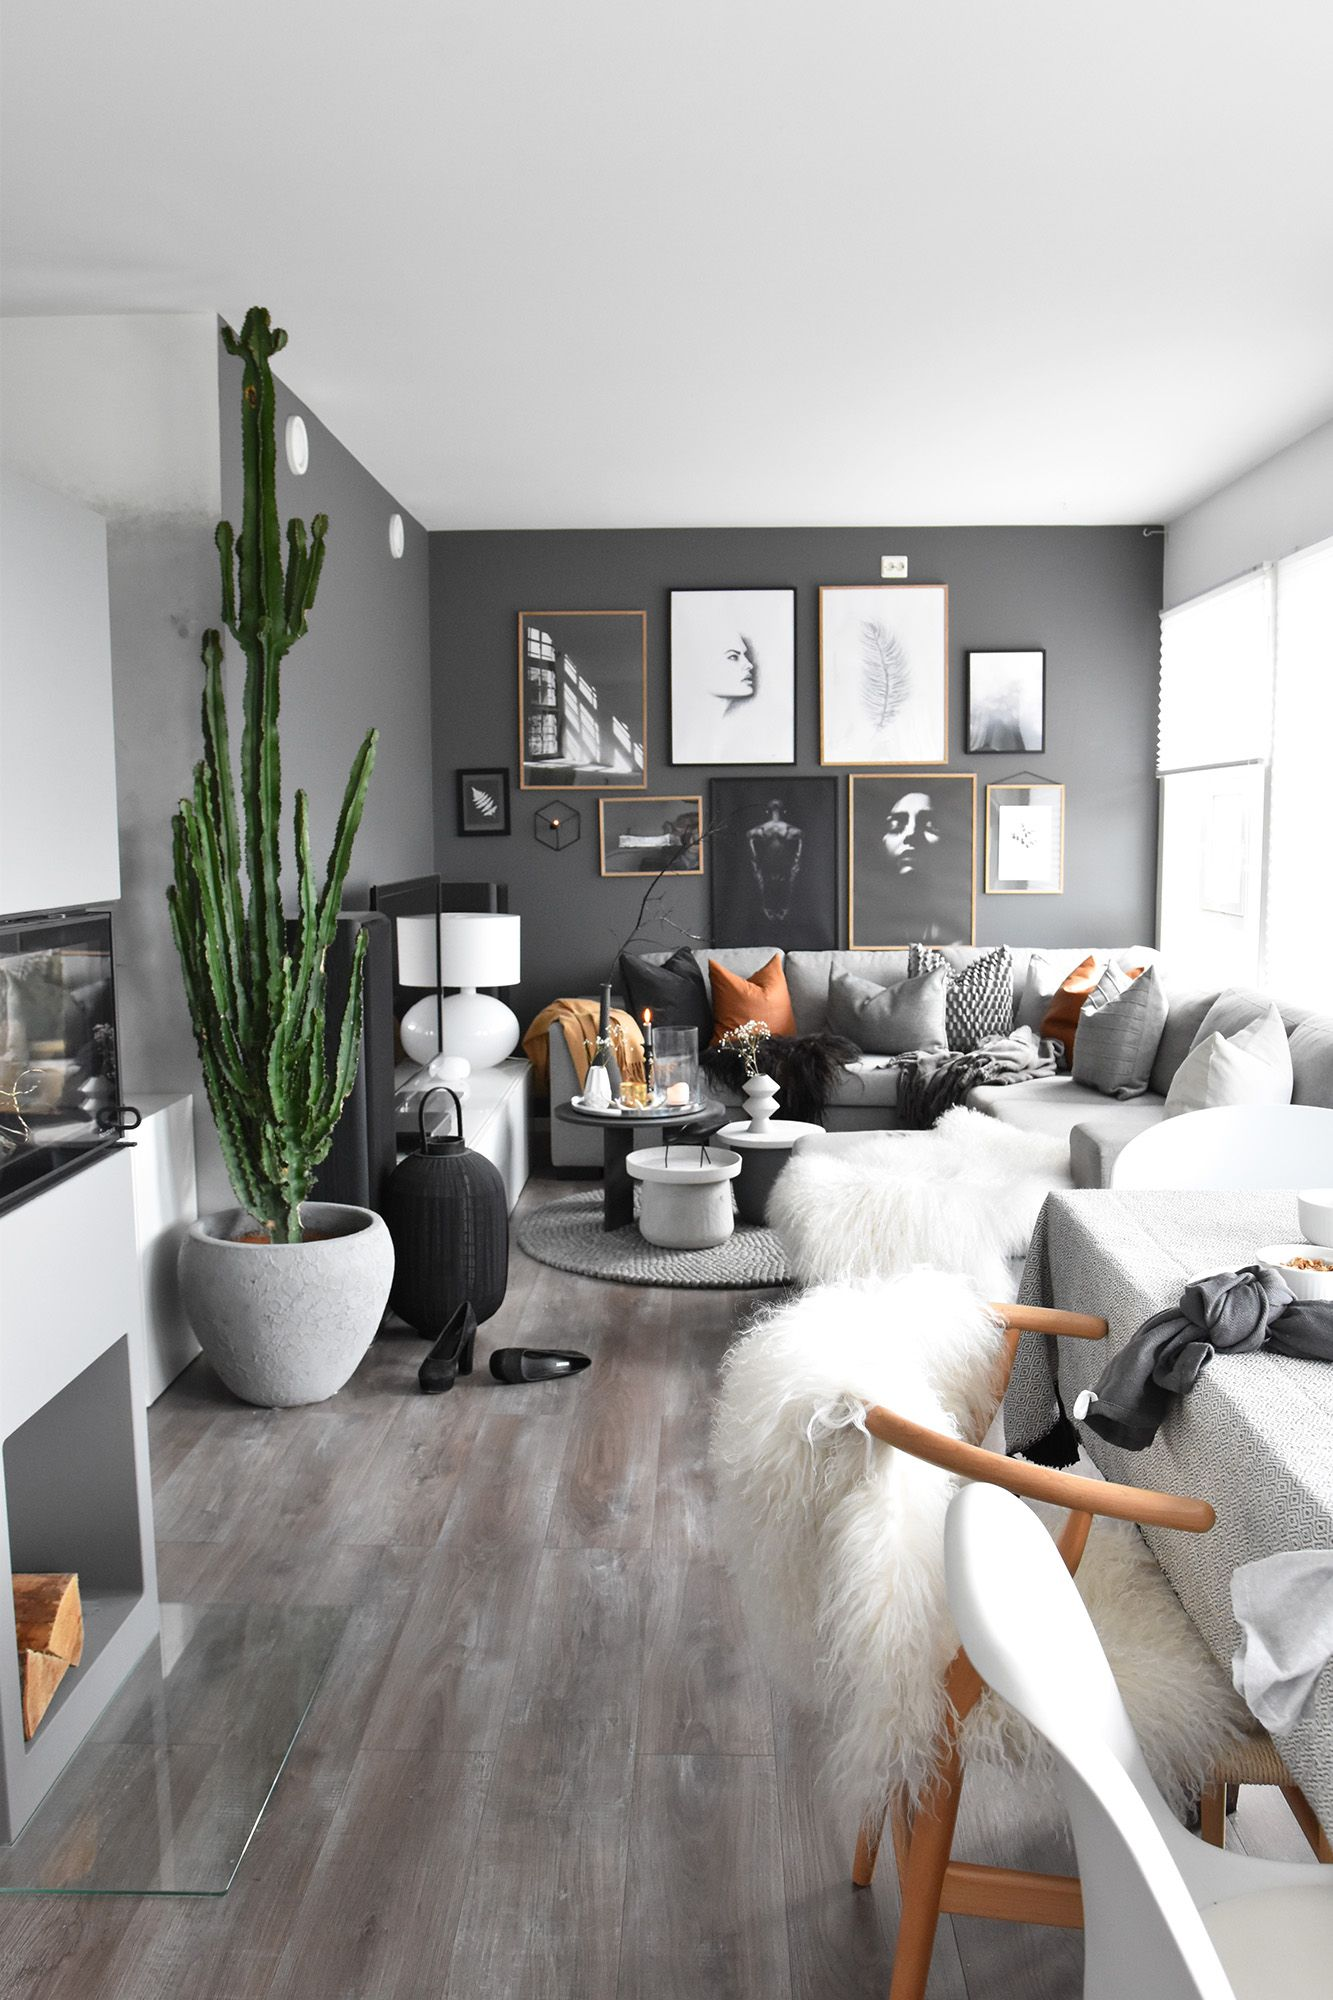 10 Fall Trends The Seasons Latest Ideas Living room ideas Room